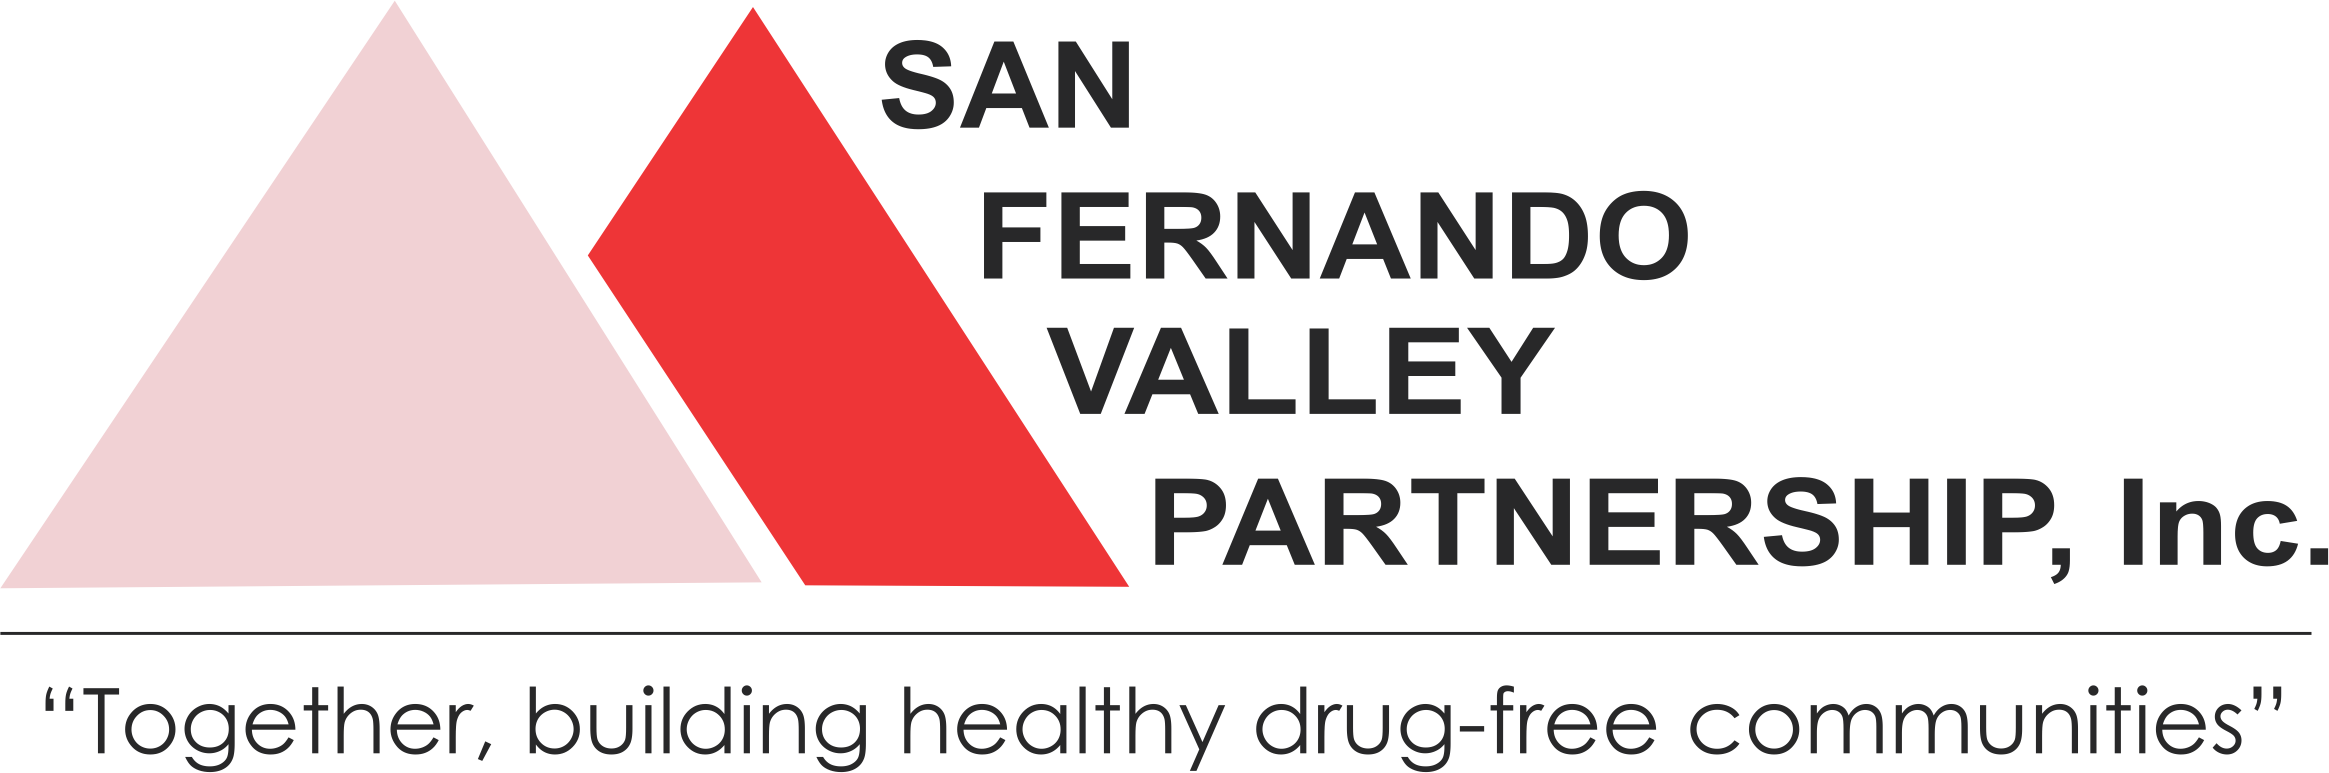 San Fernando Valley Partnership